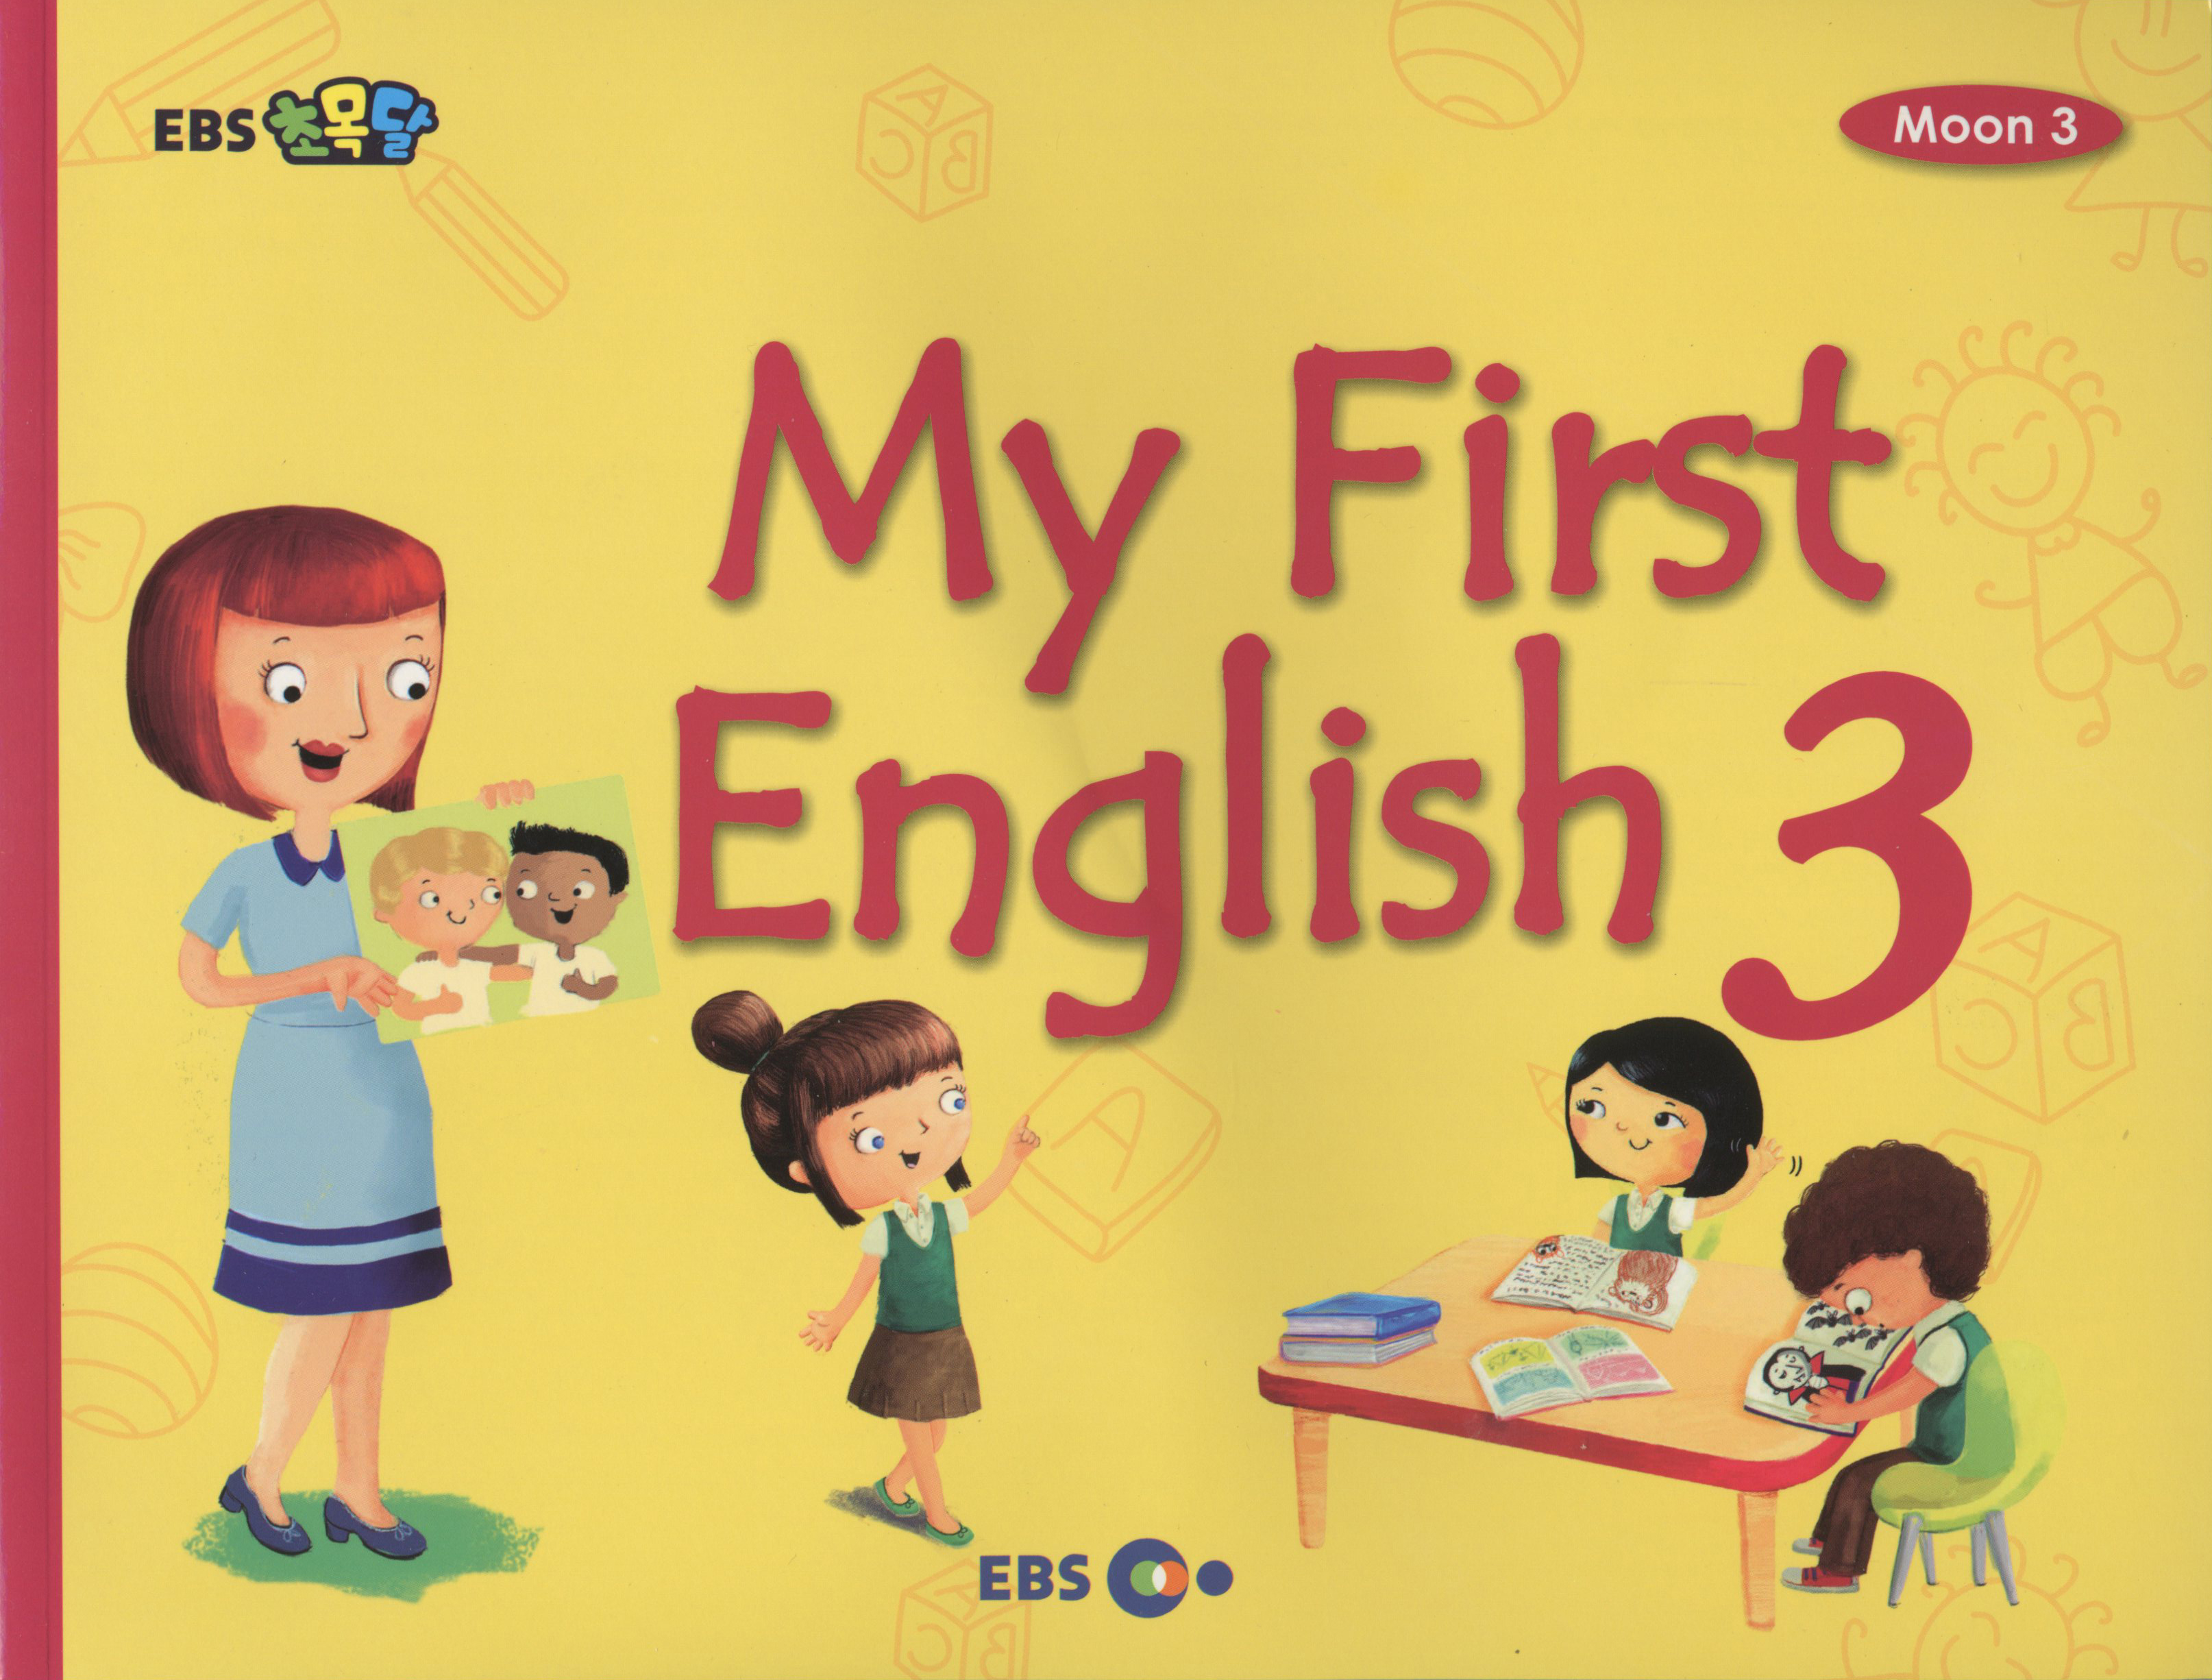 EBS 초목달 Moon 3: My First English 3